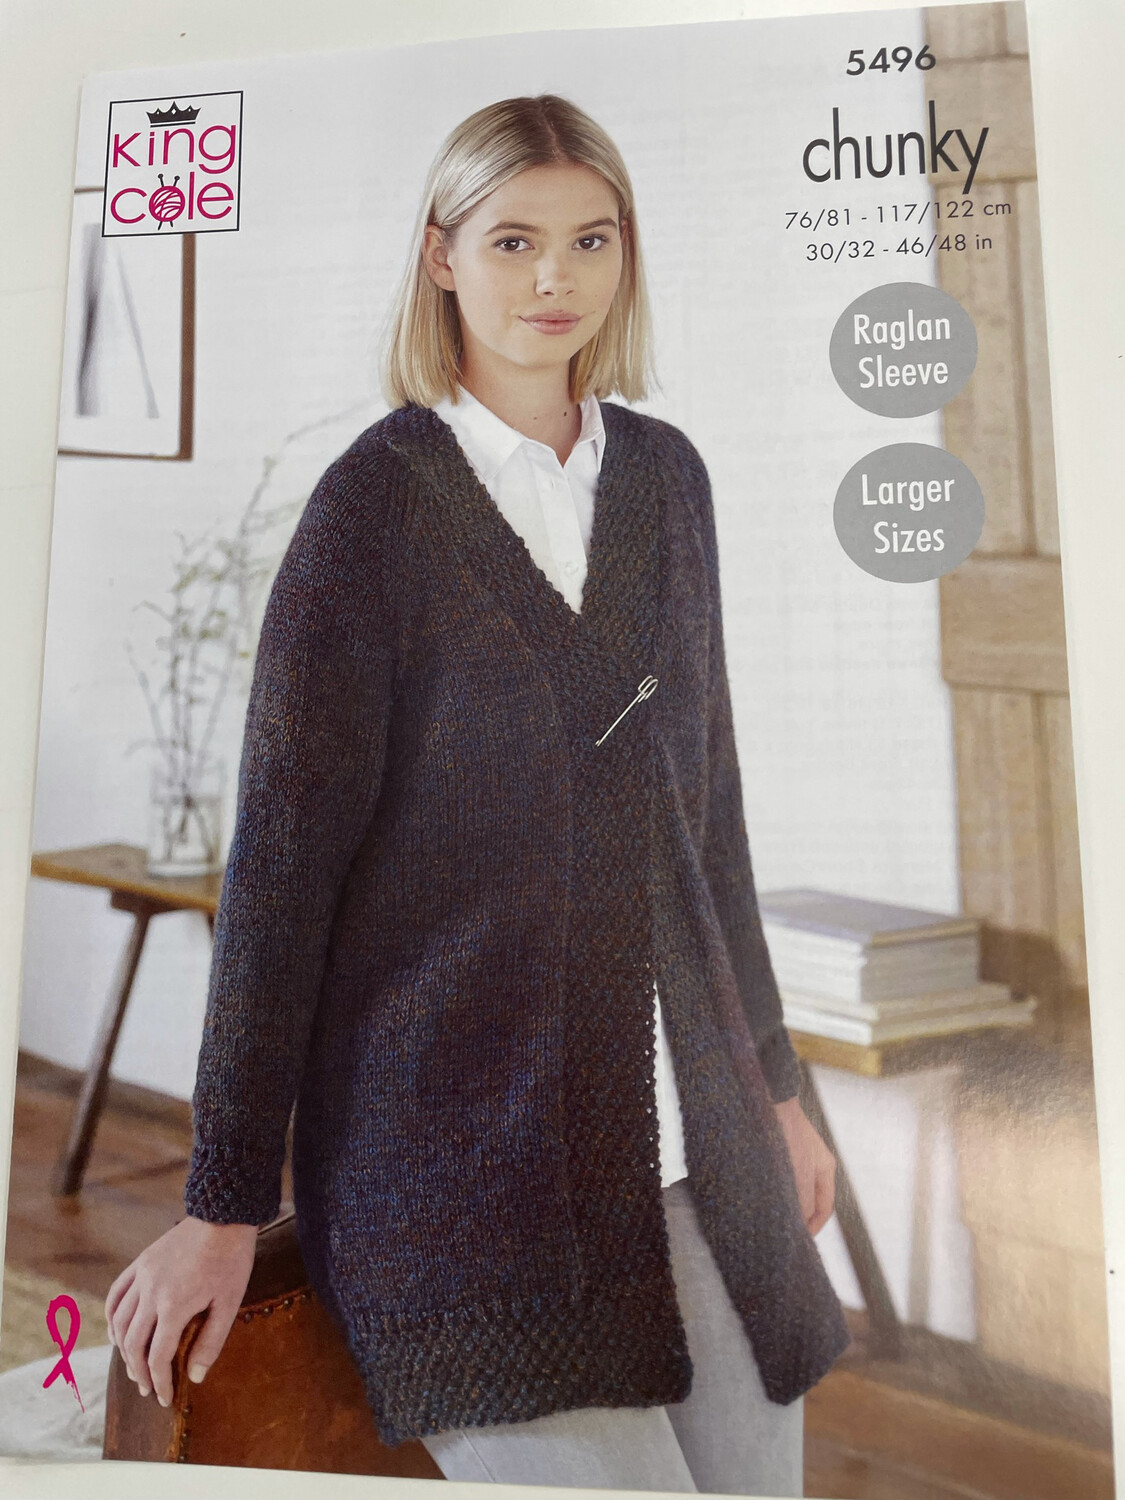 King Cole Cardigans Chunky - Women's Pattern 5496